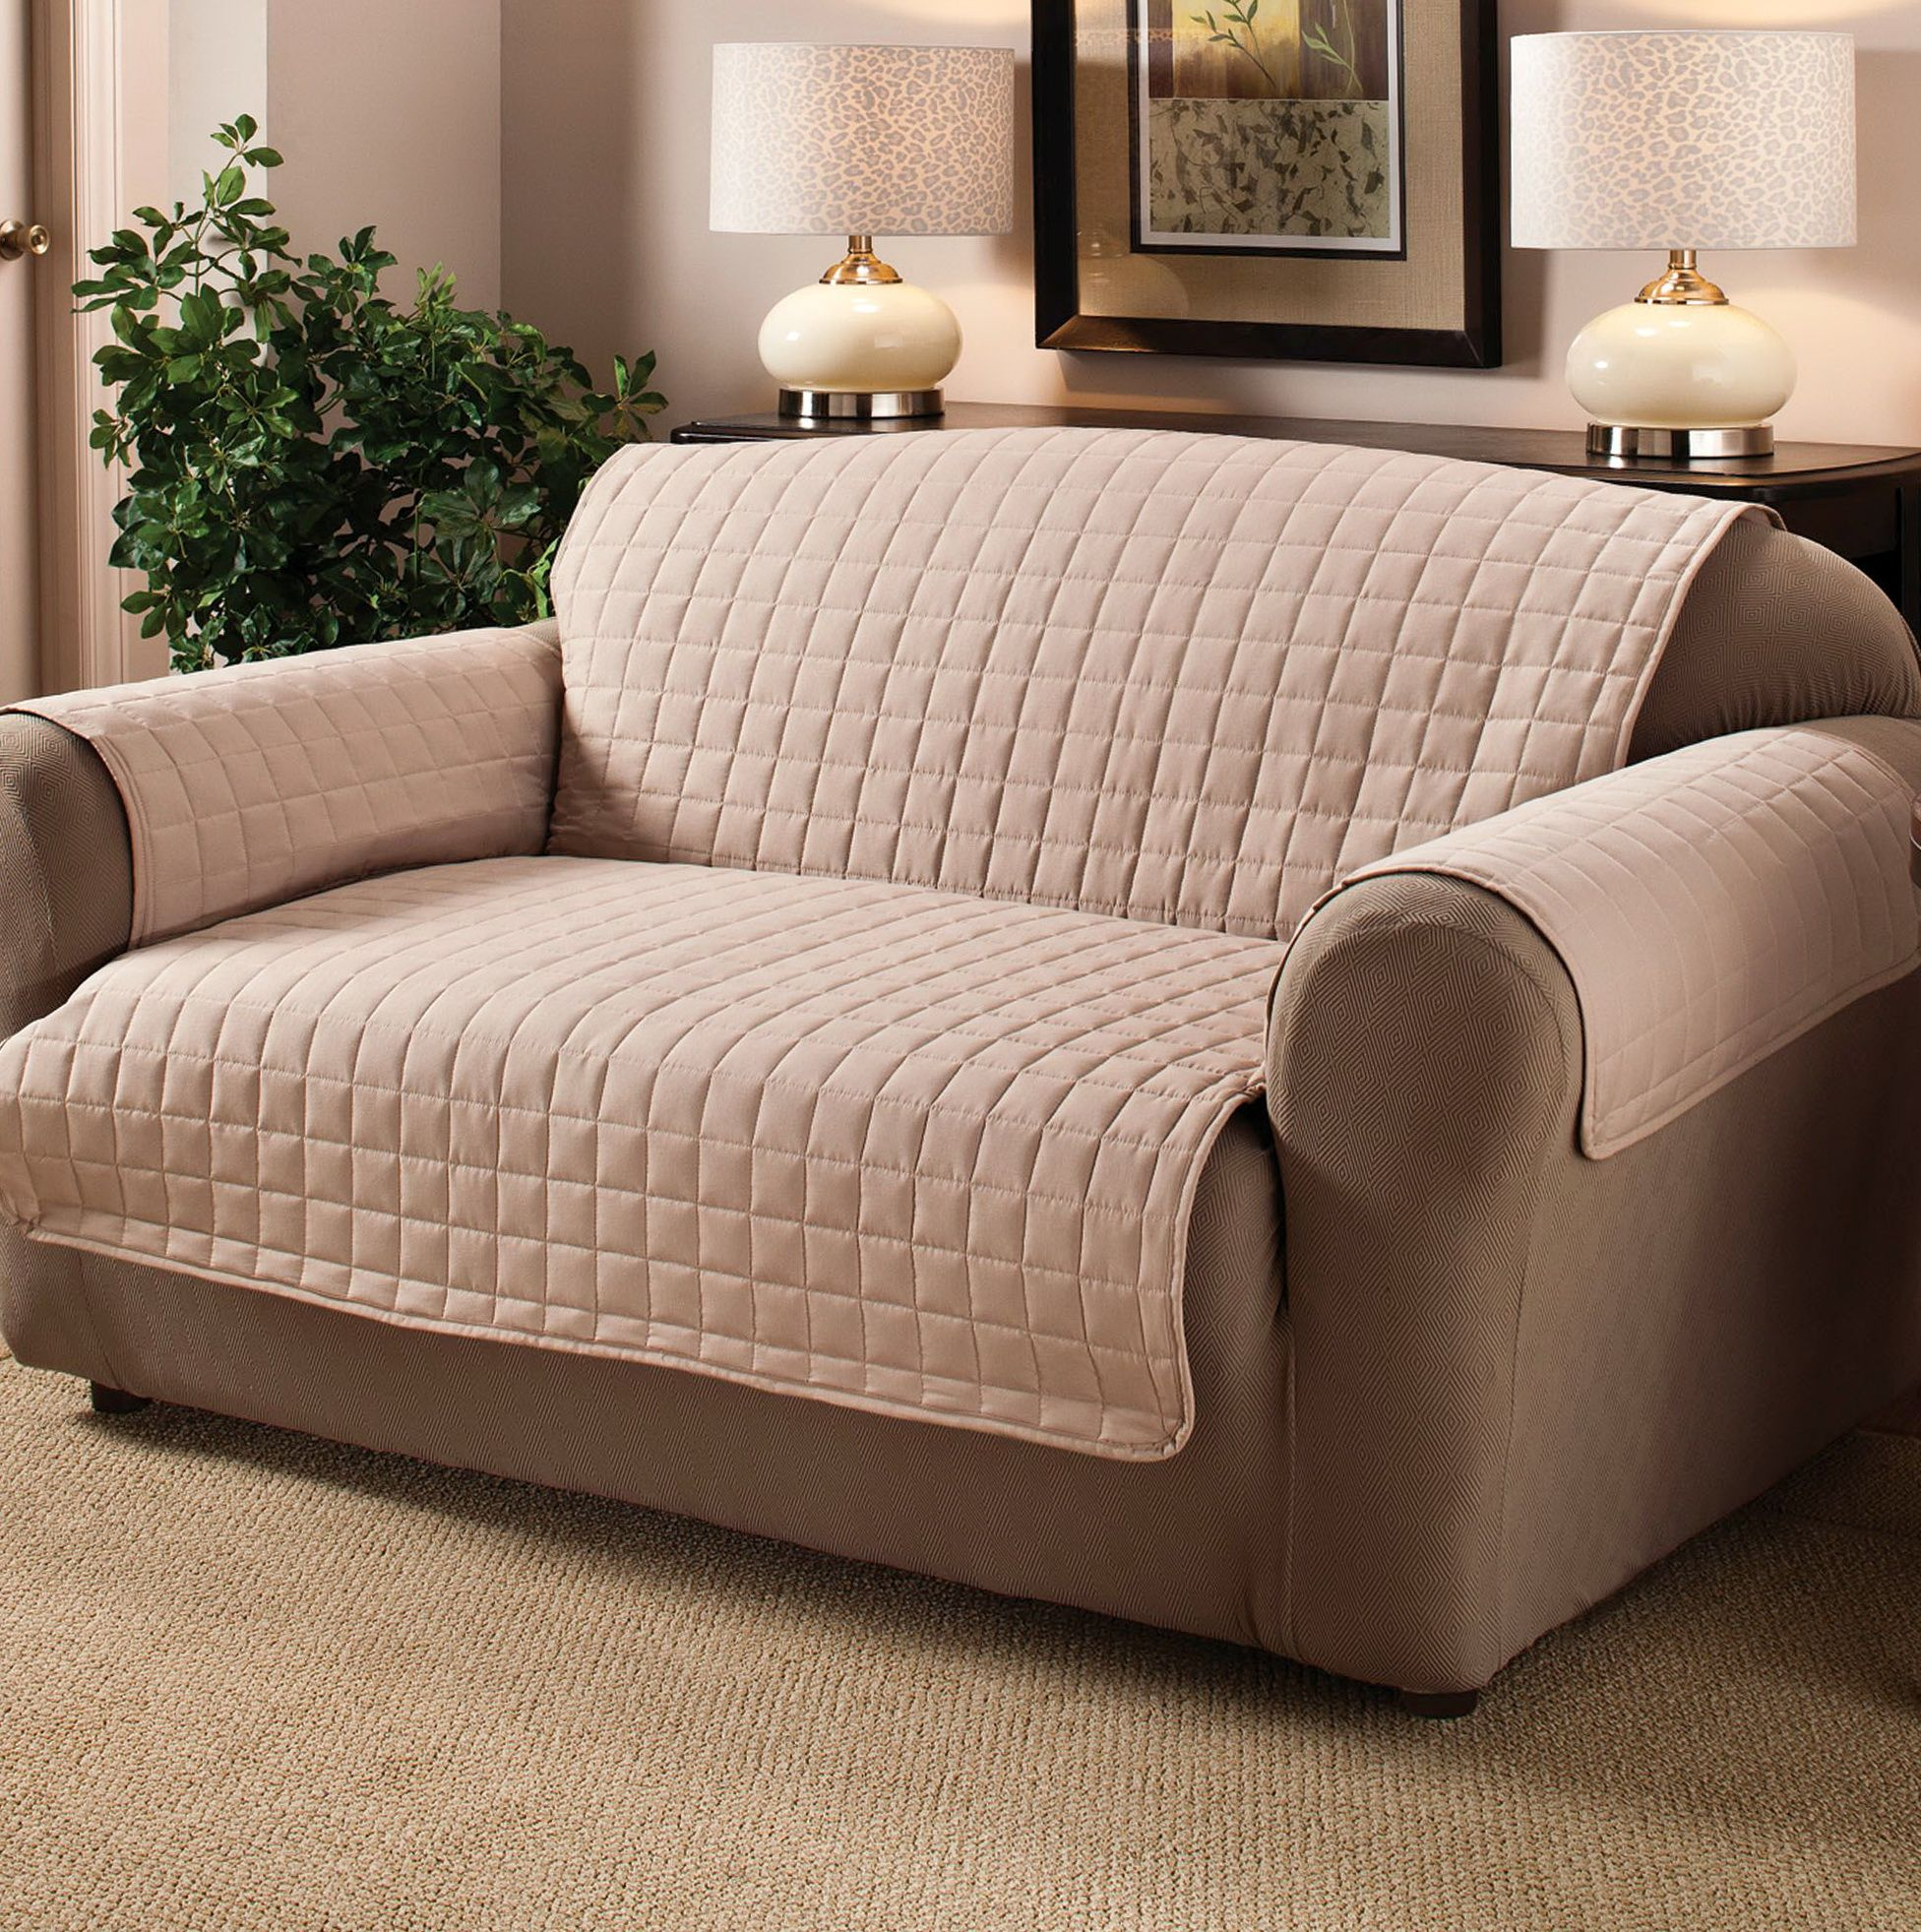 Superior Nice Chaise Lounge Sofa Covers , Lovely Chaise Lounge Sofa Covers 92 Sofas  And Couches Ideas With Chaise Lounge Sofa Covers ...